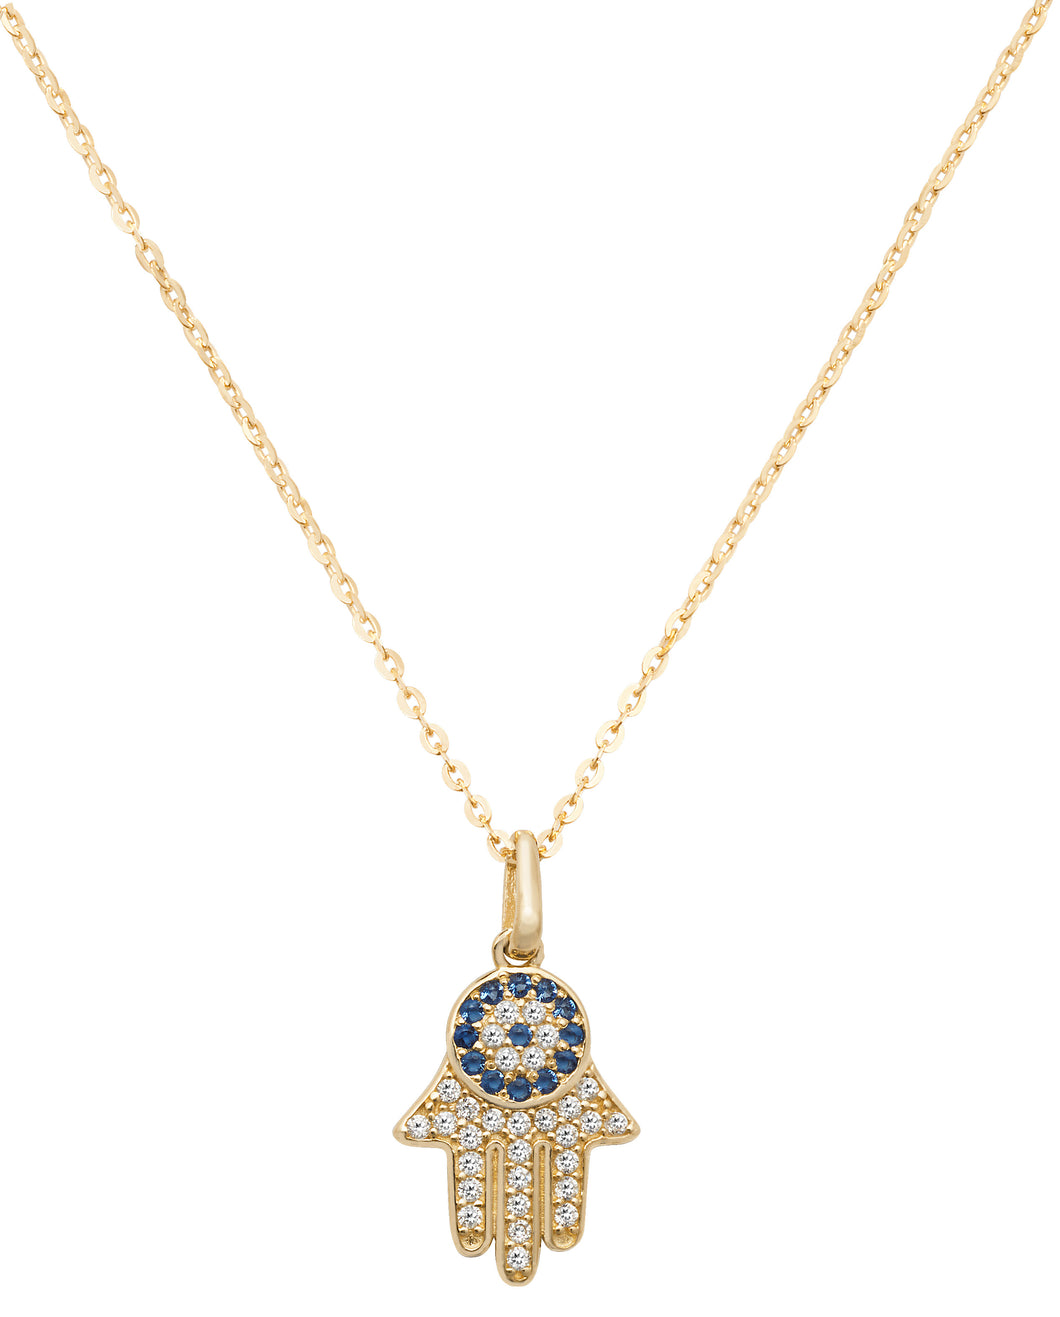 Hamsa and eye pendant